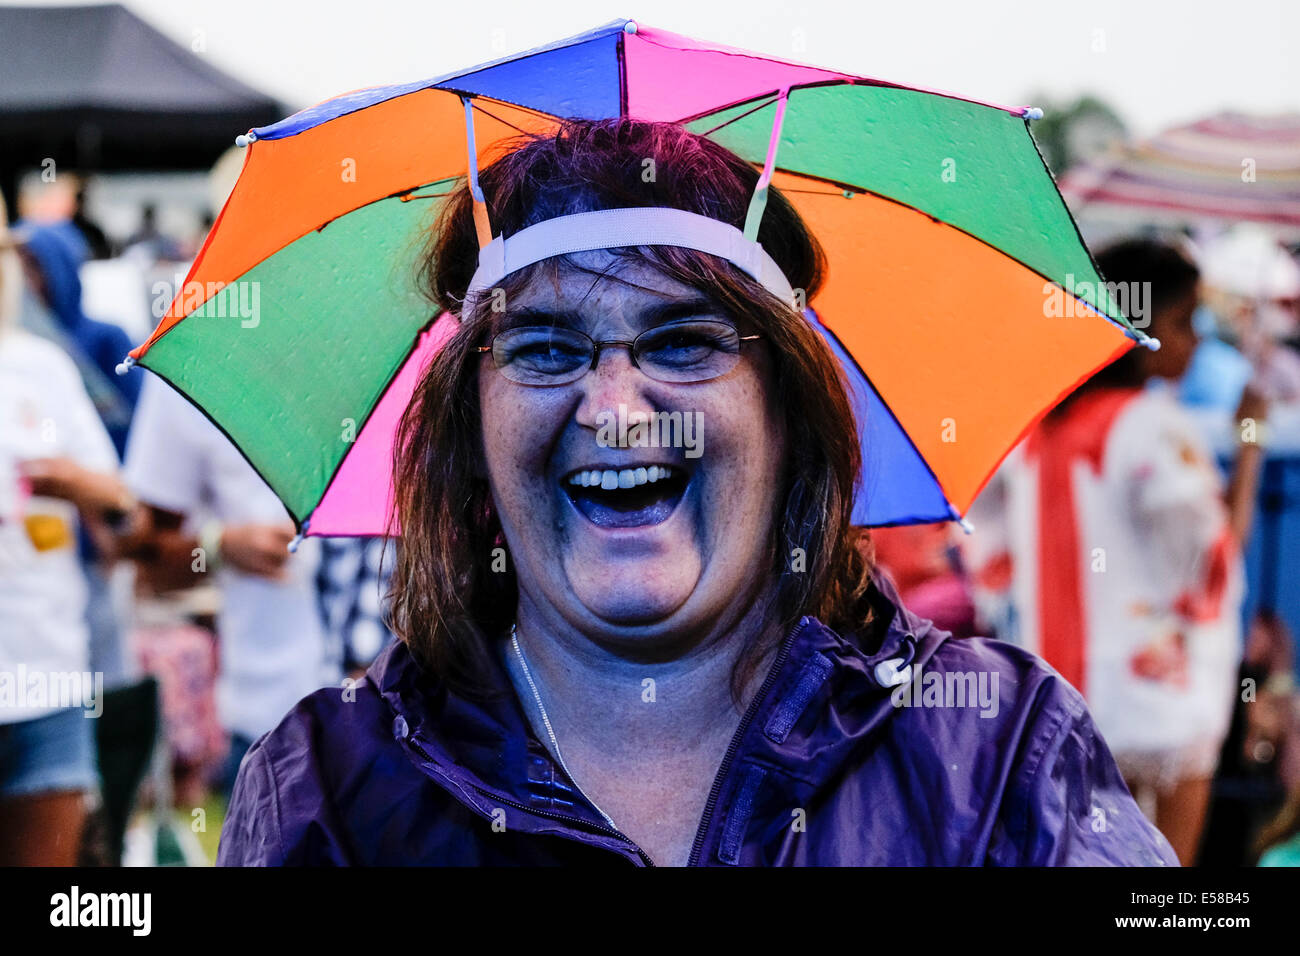 A festivalgoers enjoying herself at the Brentwood Festival. - Stock Image